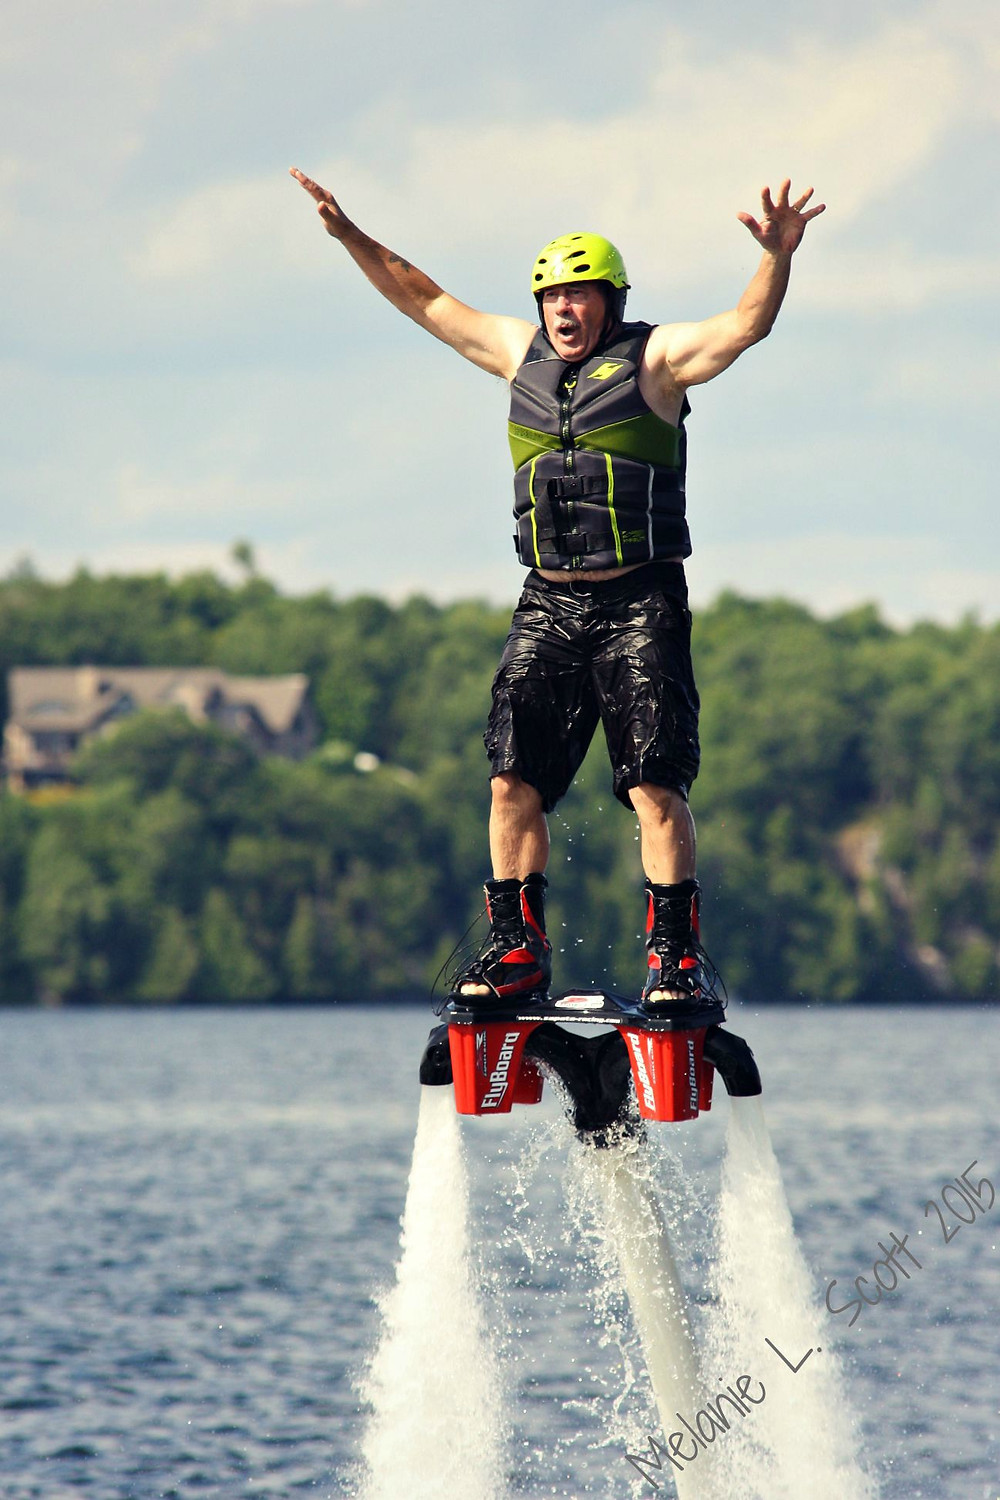 Dan trying the Flyboard for the first time.  Photo courtesy of Melanie Scott.